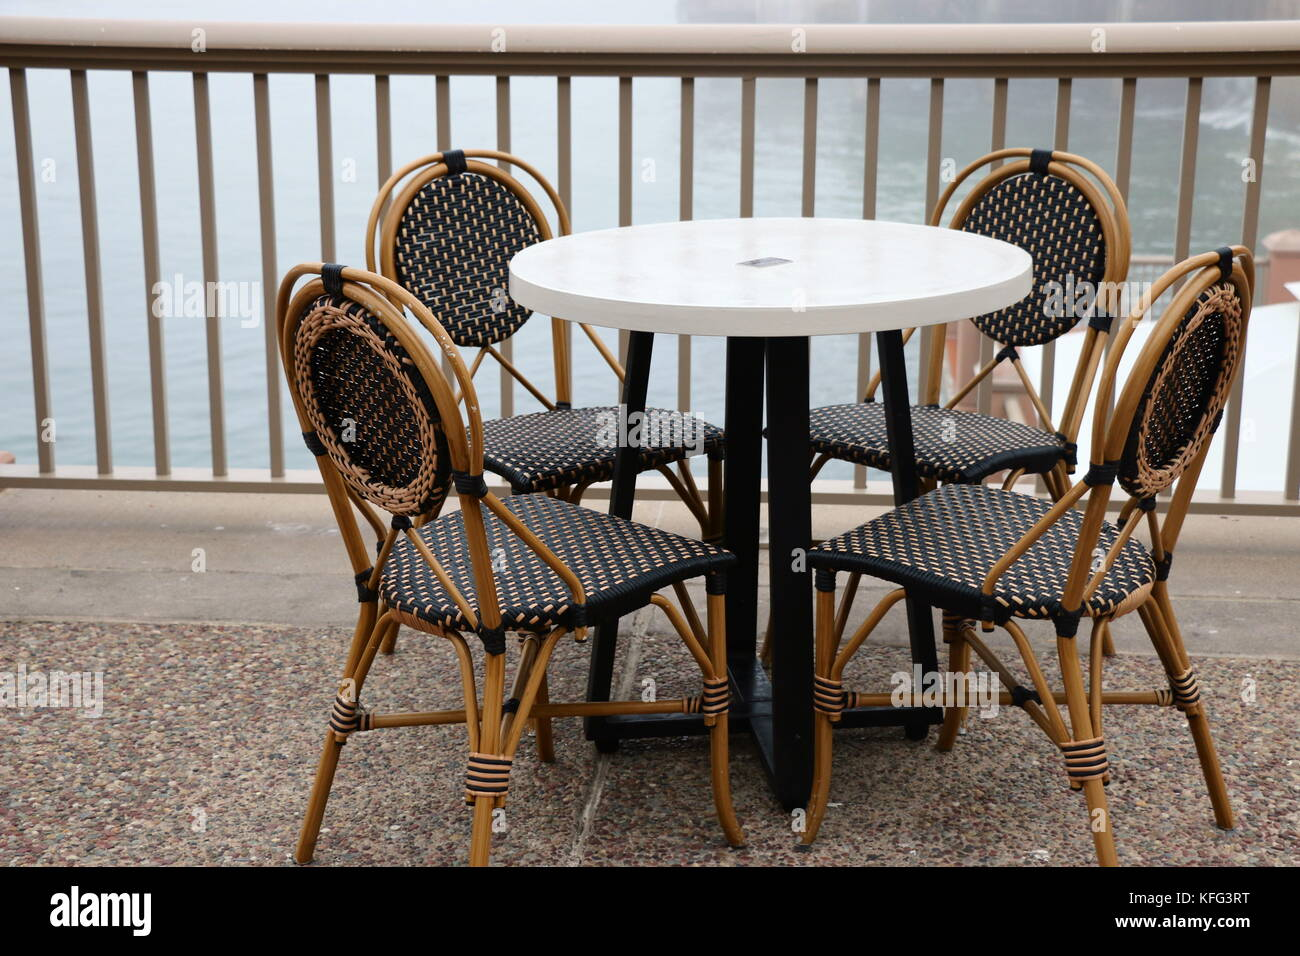 cafe table and chairs french bistro style stock image